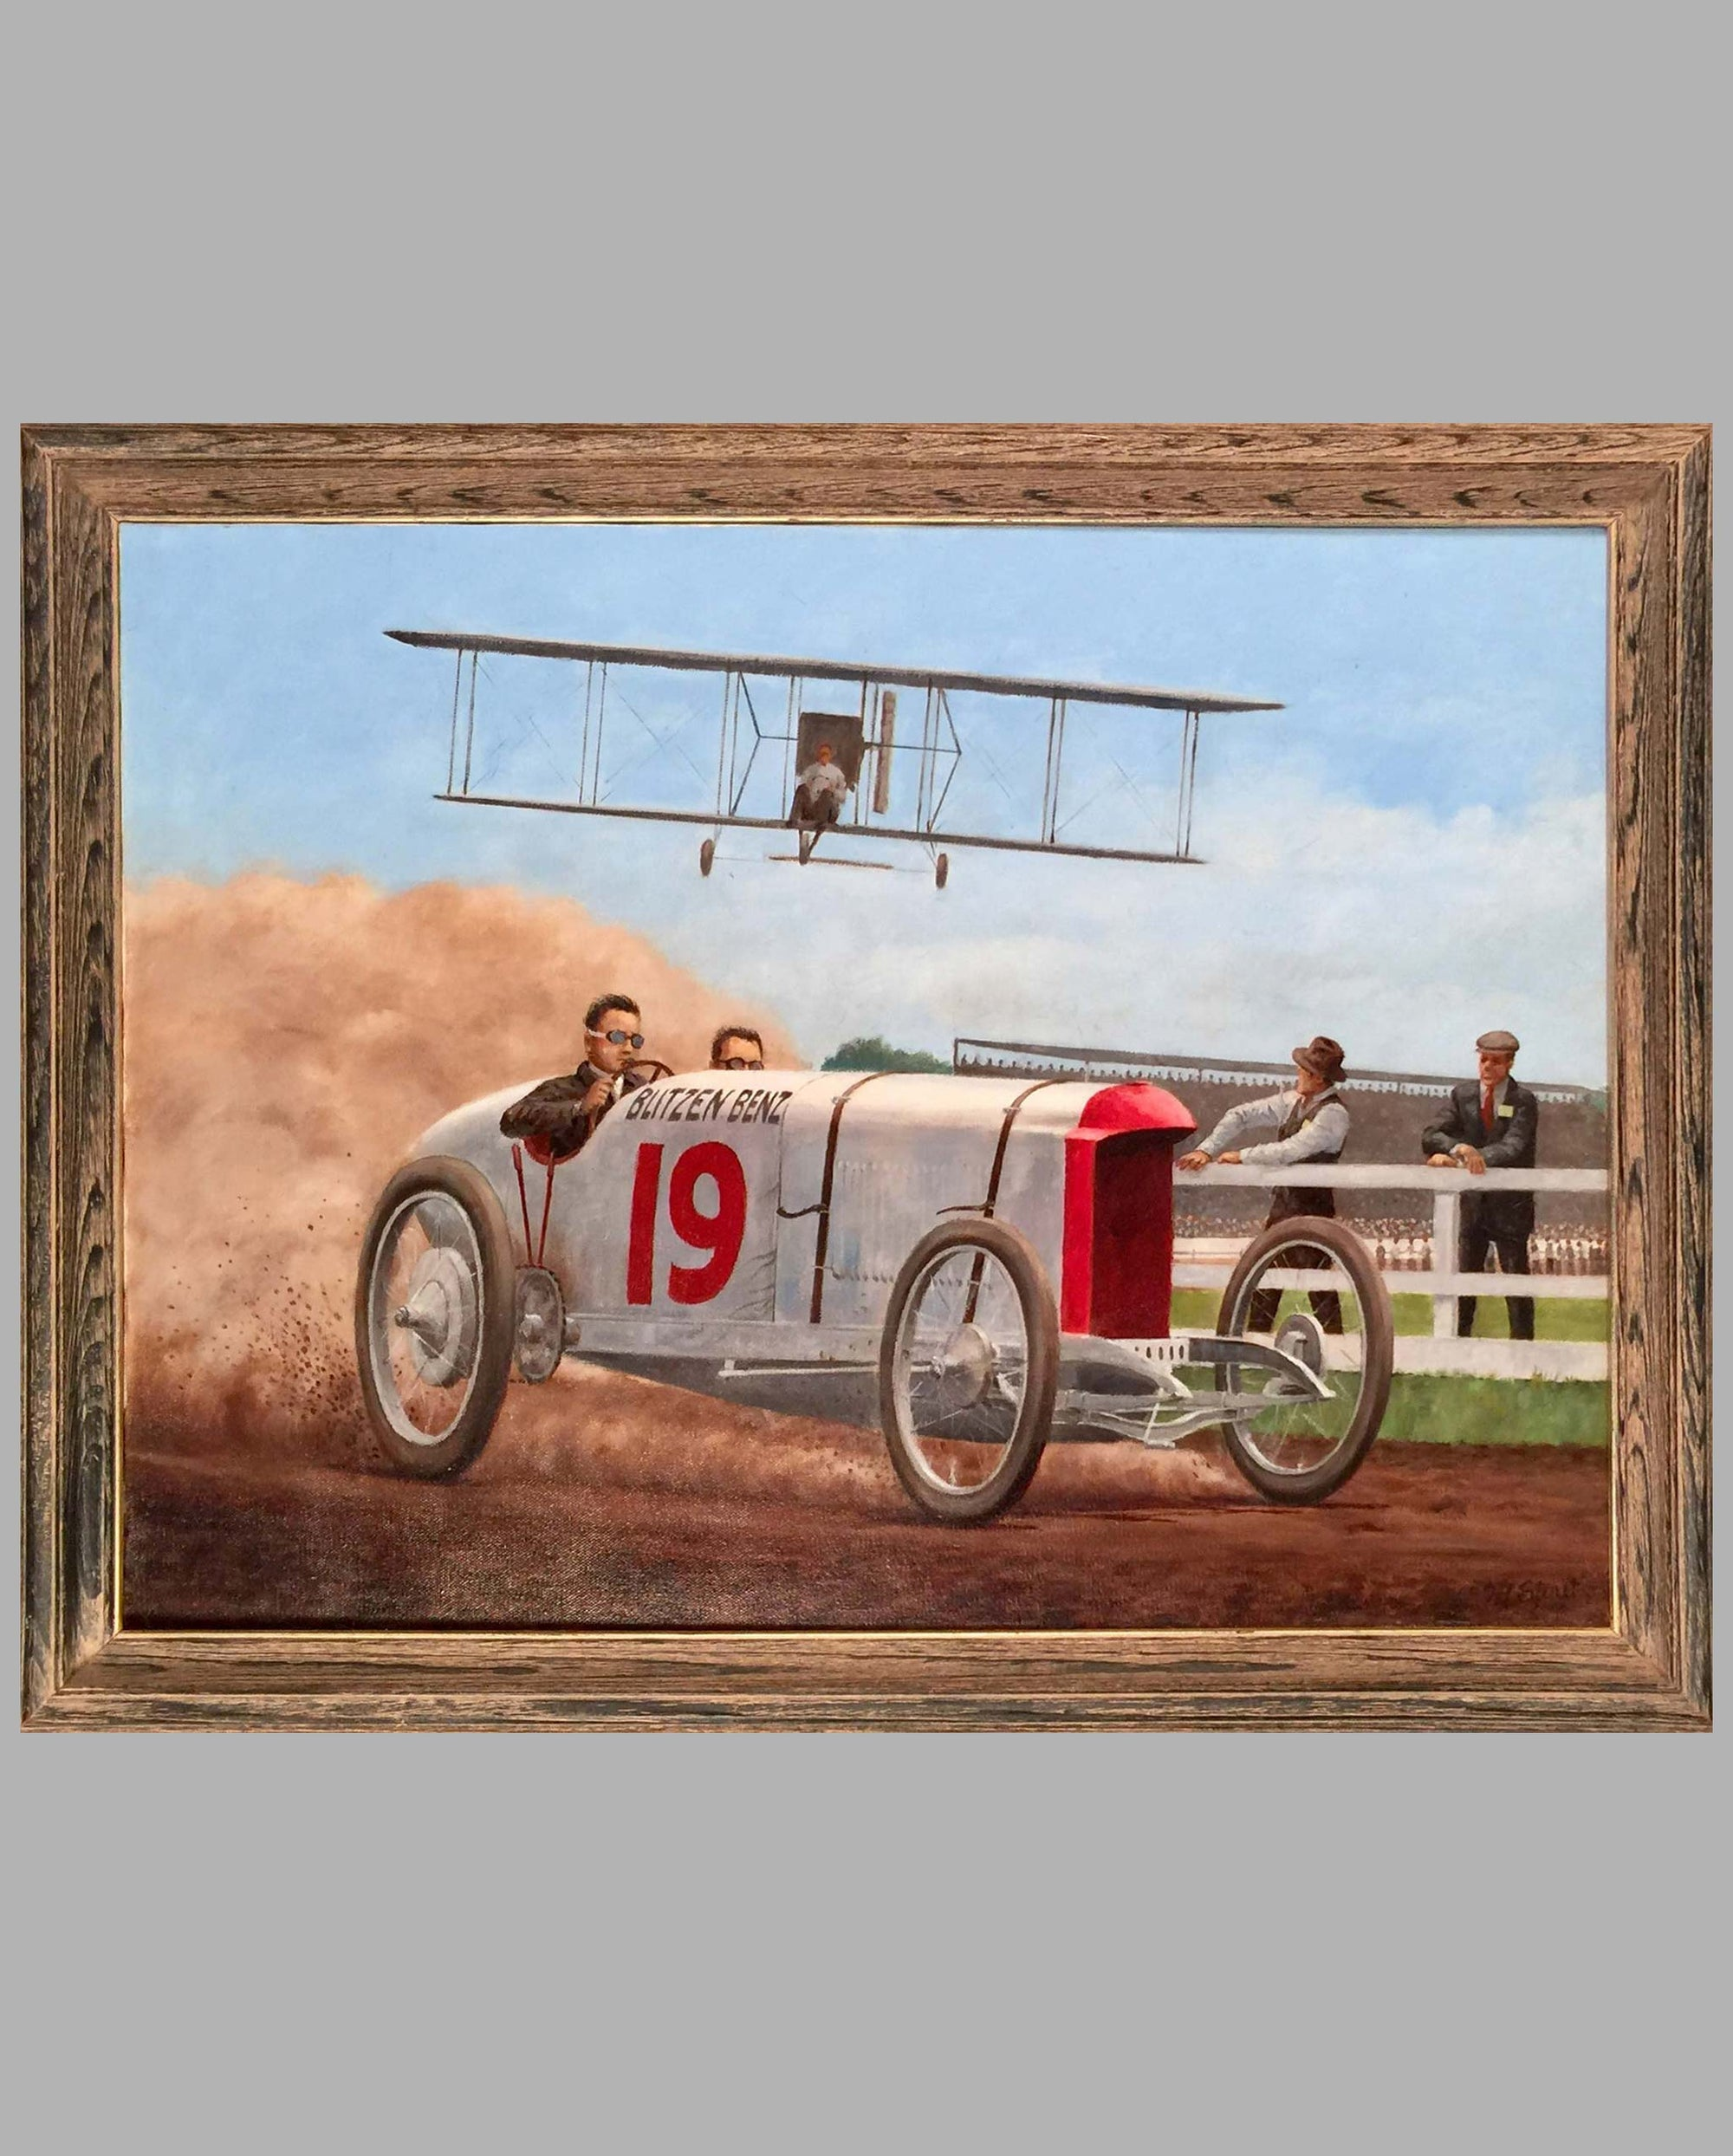 Blitzen Benz - Oil on Canvas Painting by Fred Stout.